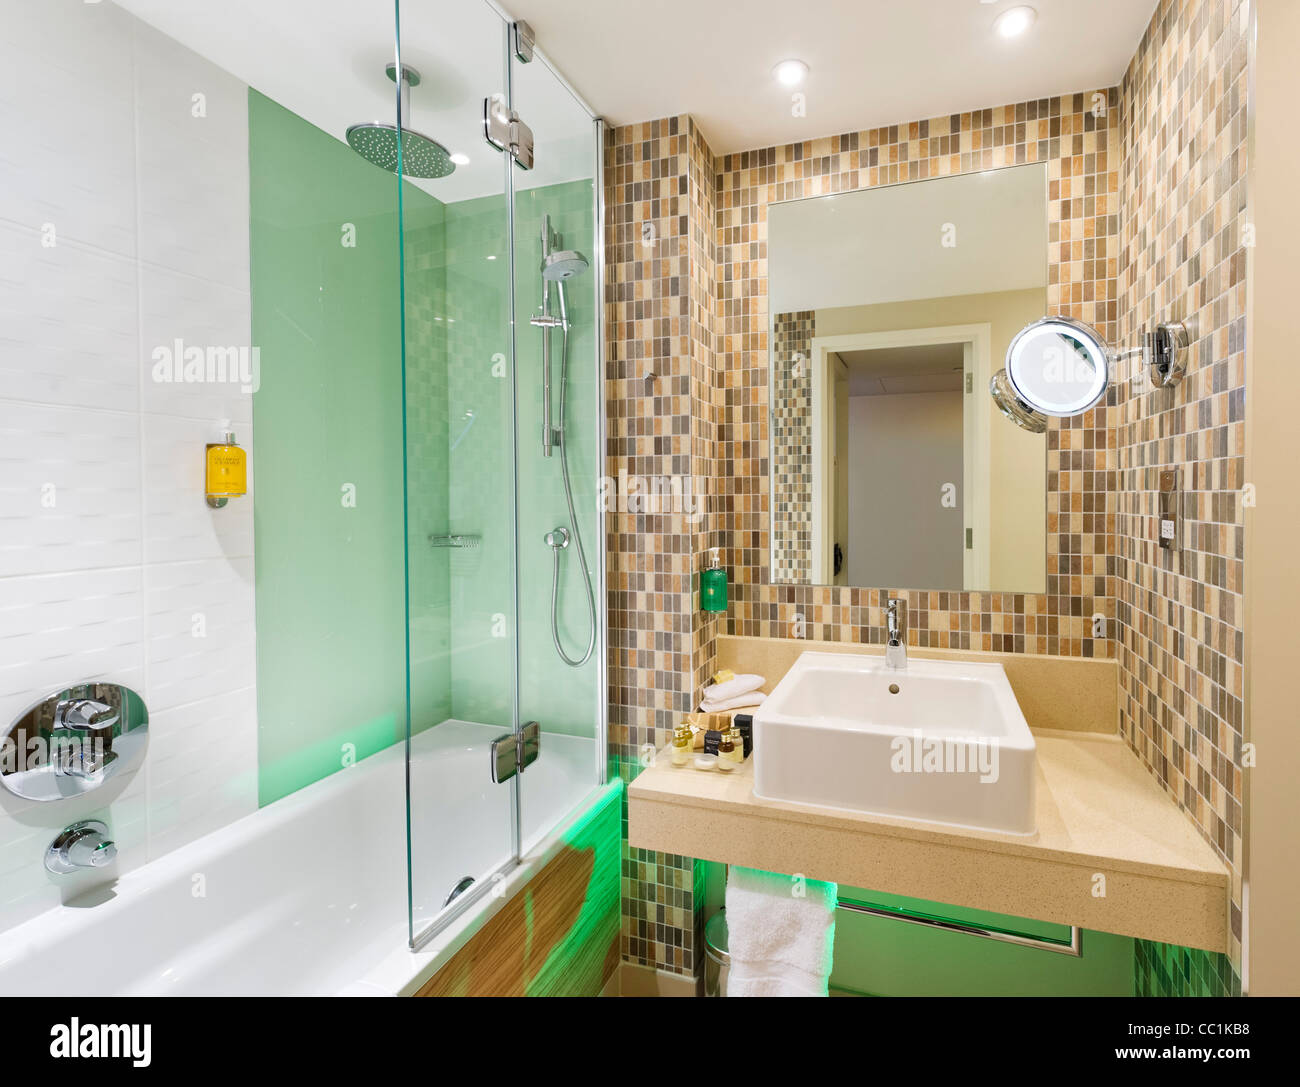 Bathroom in an Executive Room at the Holiday Inn, Media City, Salford Quays, Manchester, UK - Stock Image